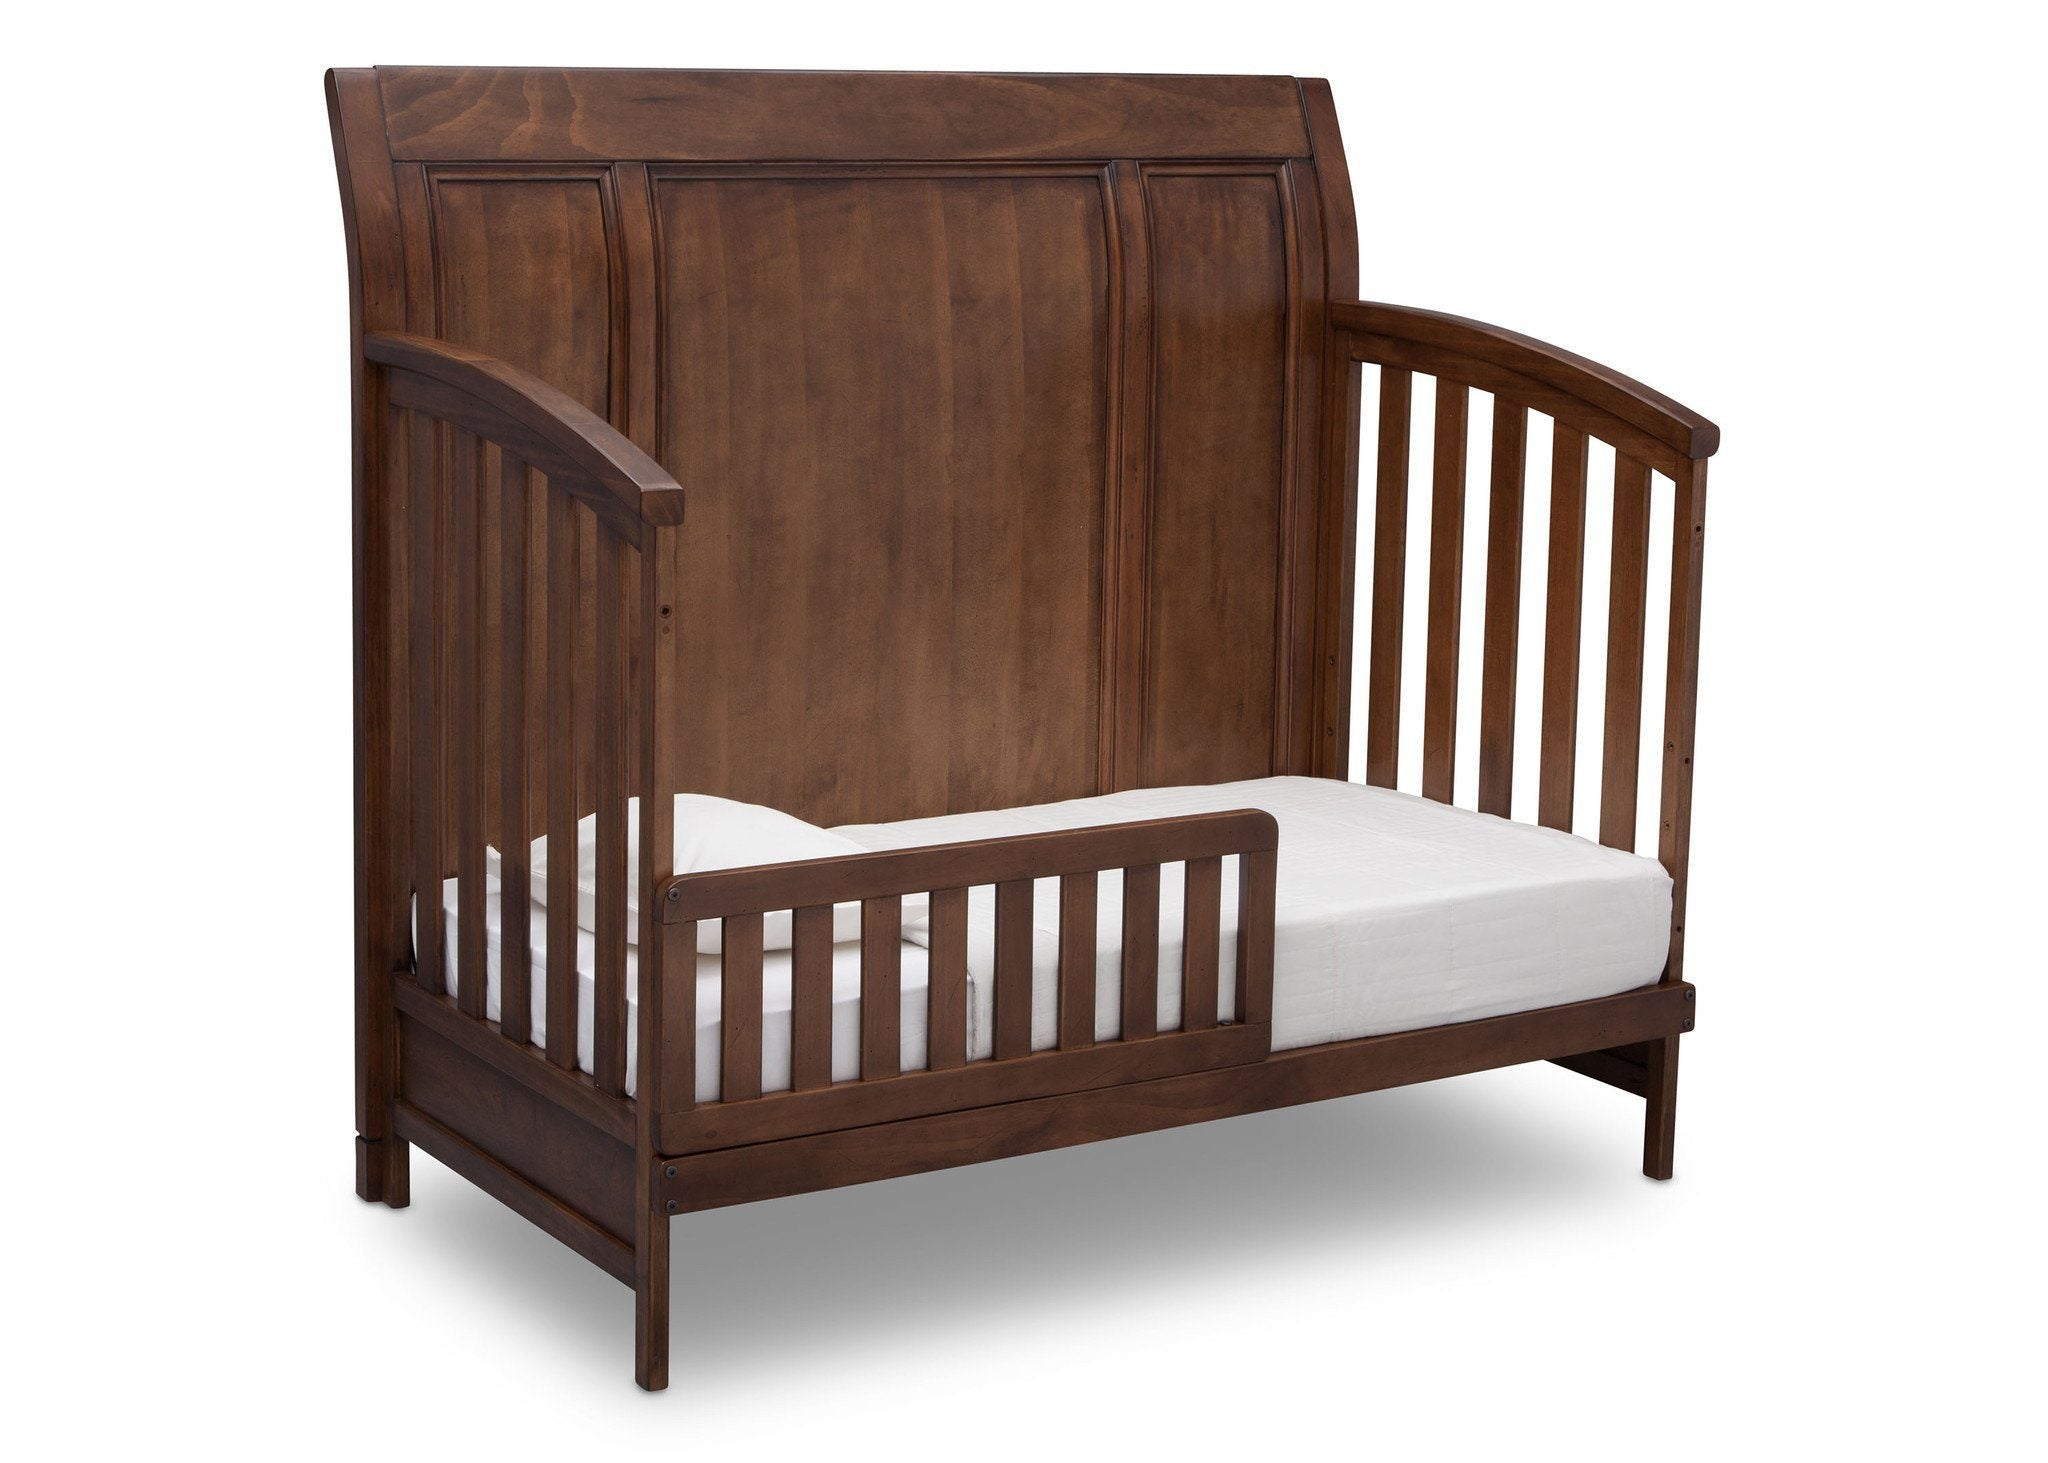 cribs crib safe dexbaby sleeper rail toddler convertible with reinforce bed